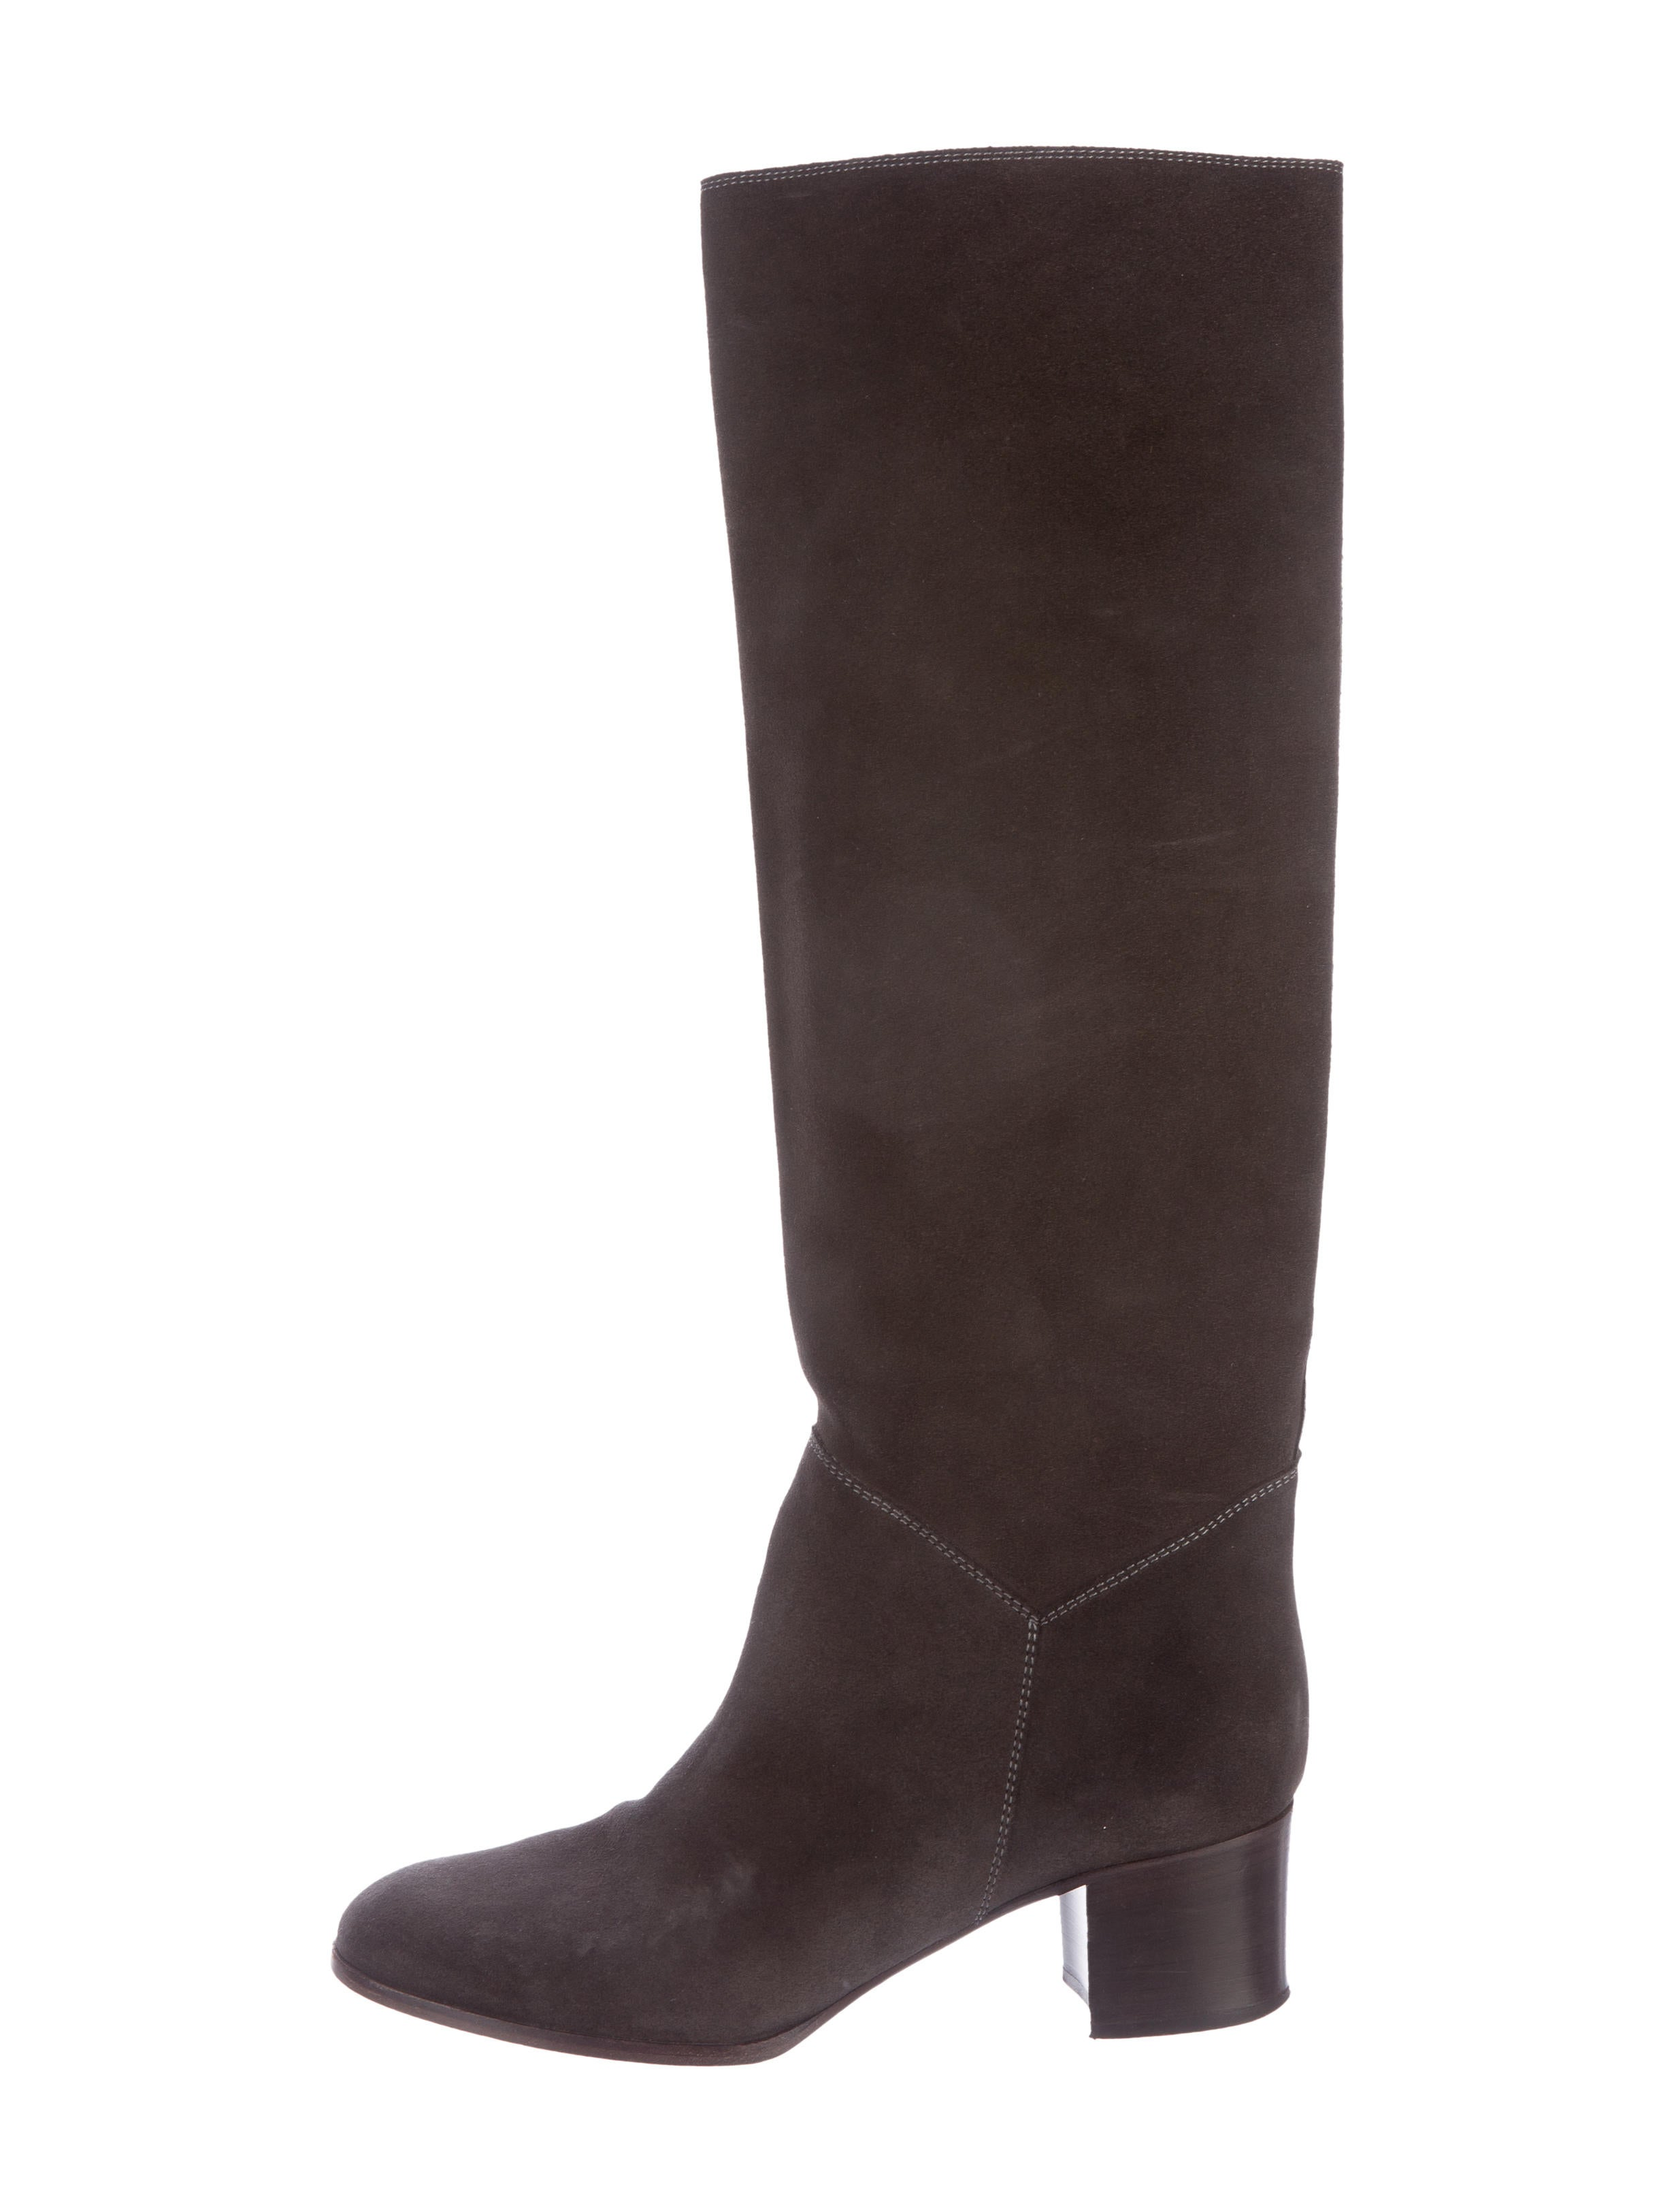 Find a great selection of women's knee-high boots at travabjmsh.ga Browse tall cowboy boots, rain boots, riding boots and more. Totally free shipping and returns on all the best brands including Steve Madden, Sam Edelman, and Blondo.